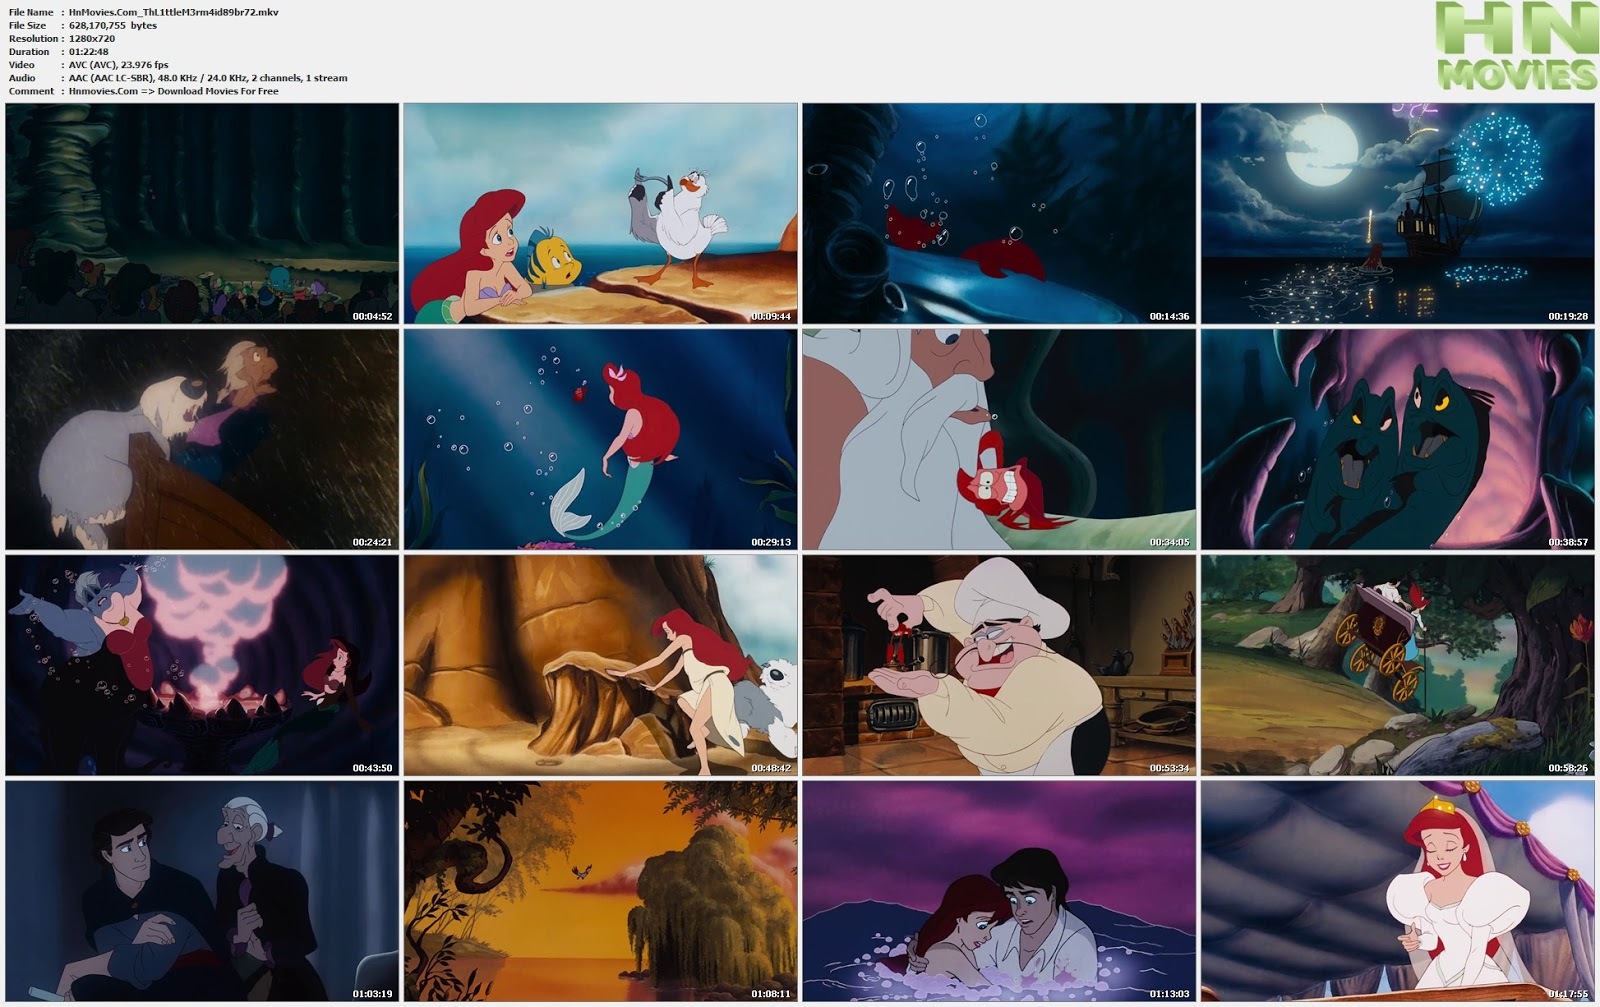 movie screenshot of The Little Mermaid fdmovie.com